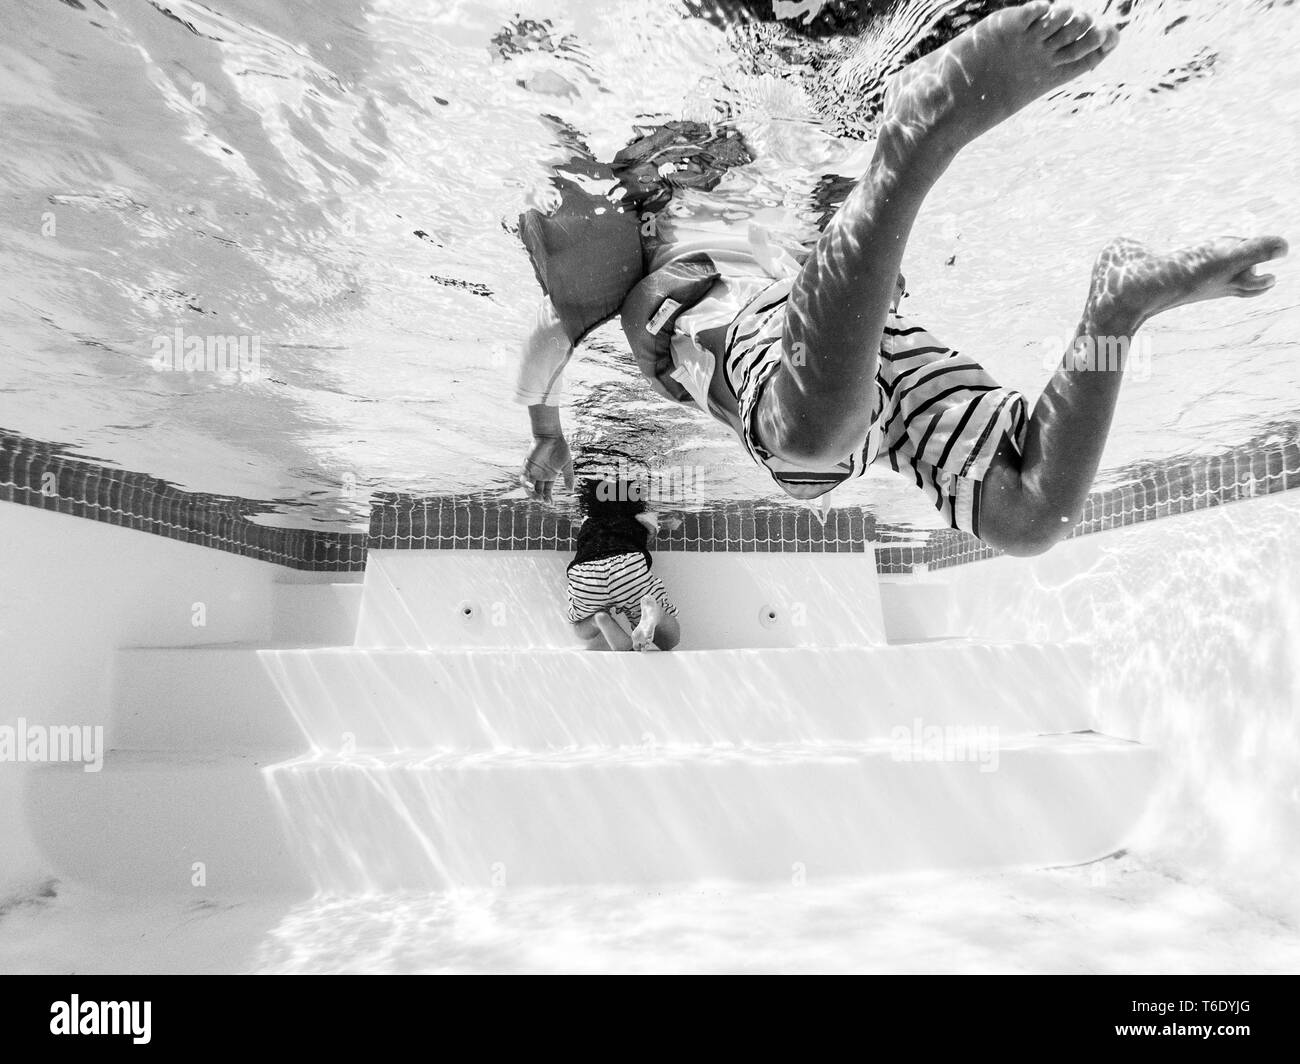 Black and white shot of a person swimming in a pool - Stock Image